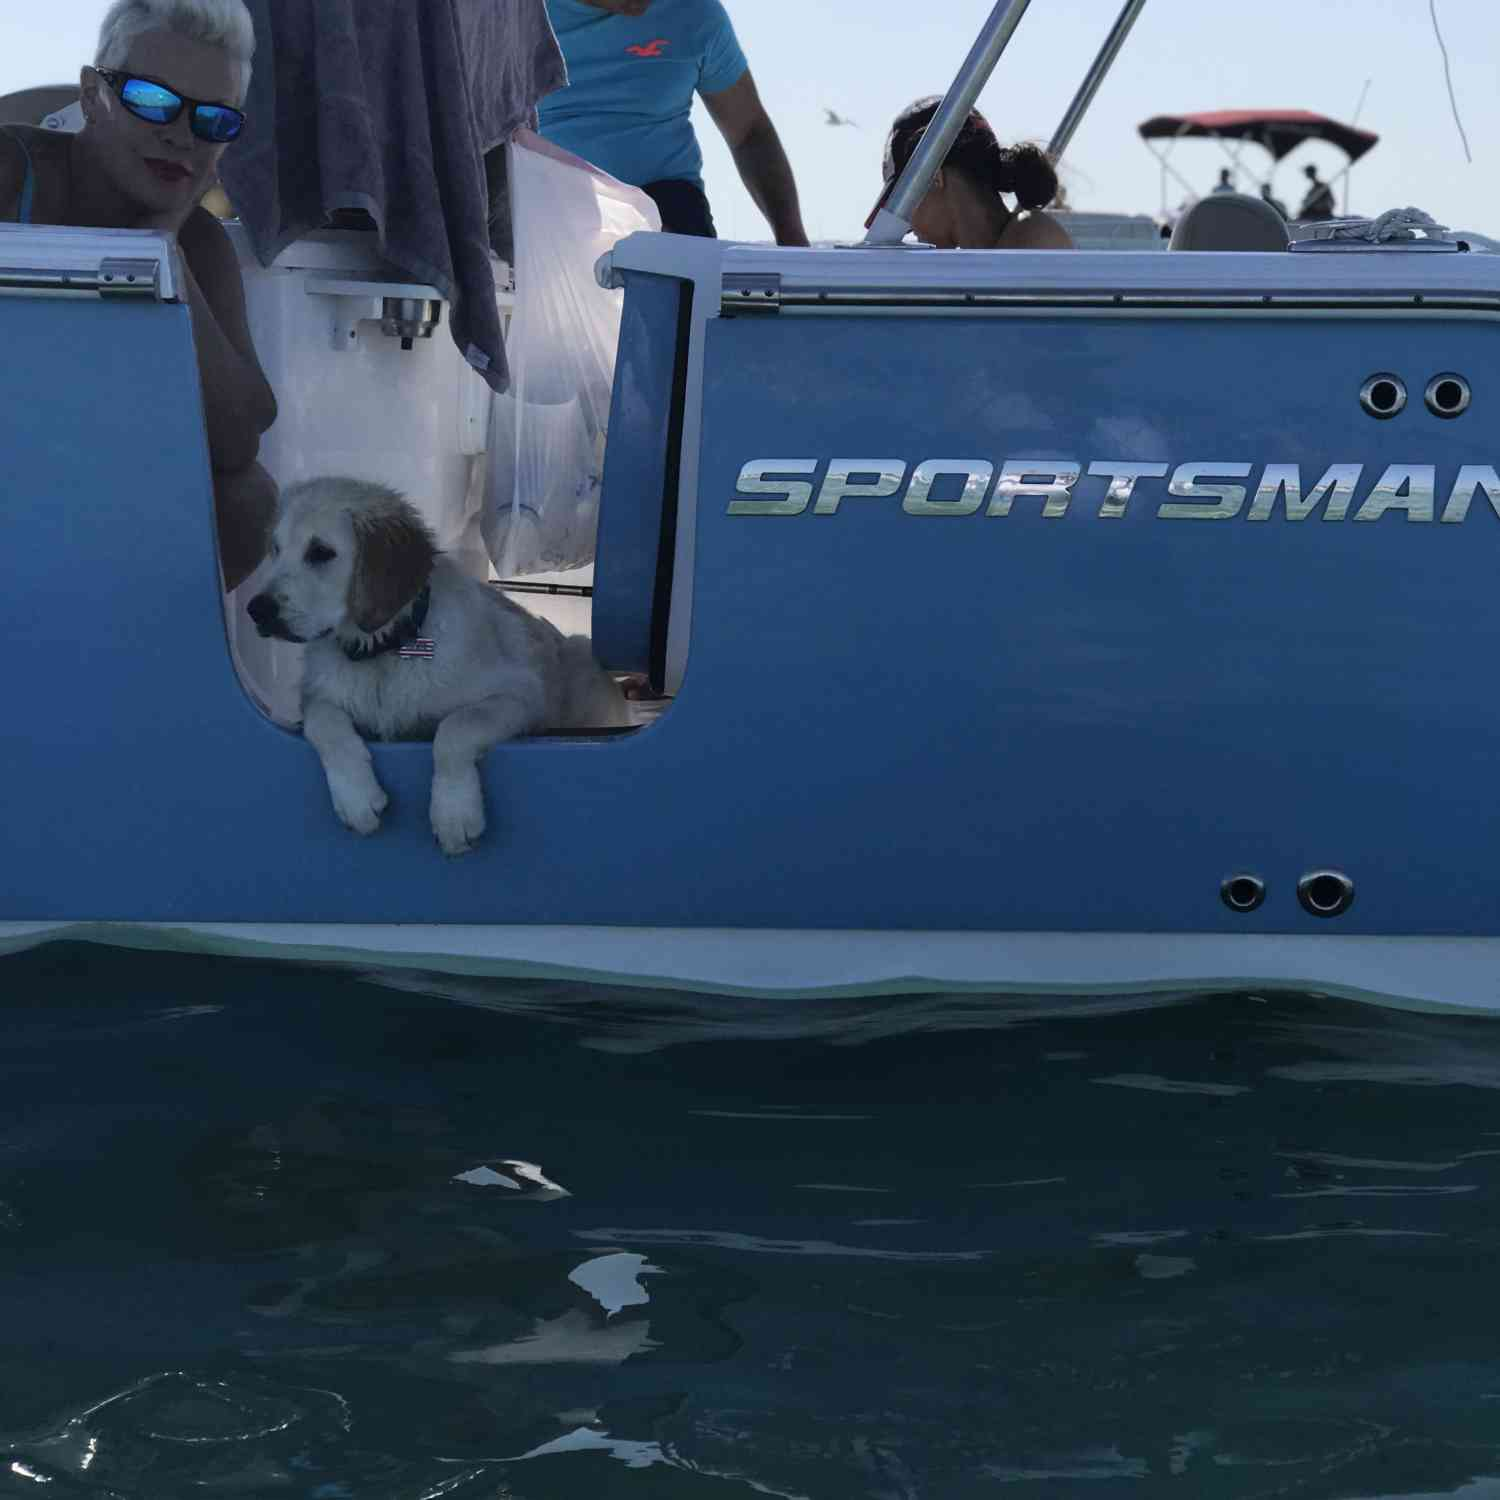 Title: Thanks Ralph - On board their Sportsman Open 252 Center Console - Location: Crab island Destin Fl. Participating in the Photo Contest #SportsmanMay2018